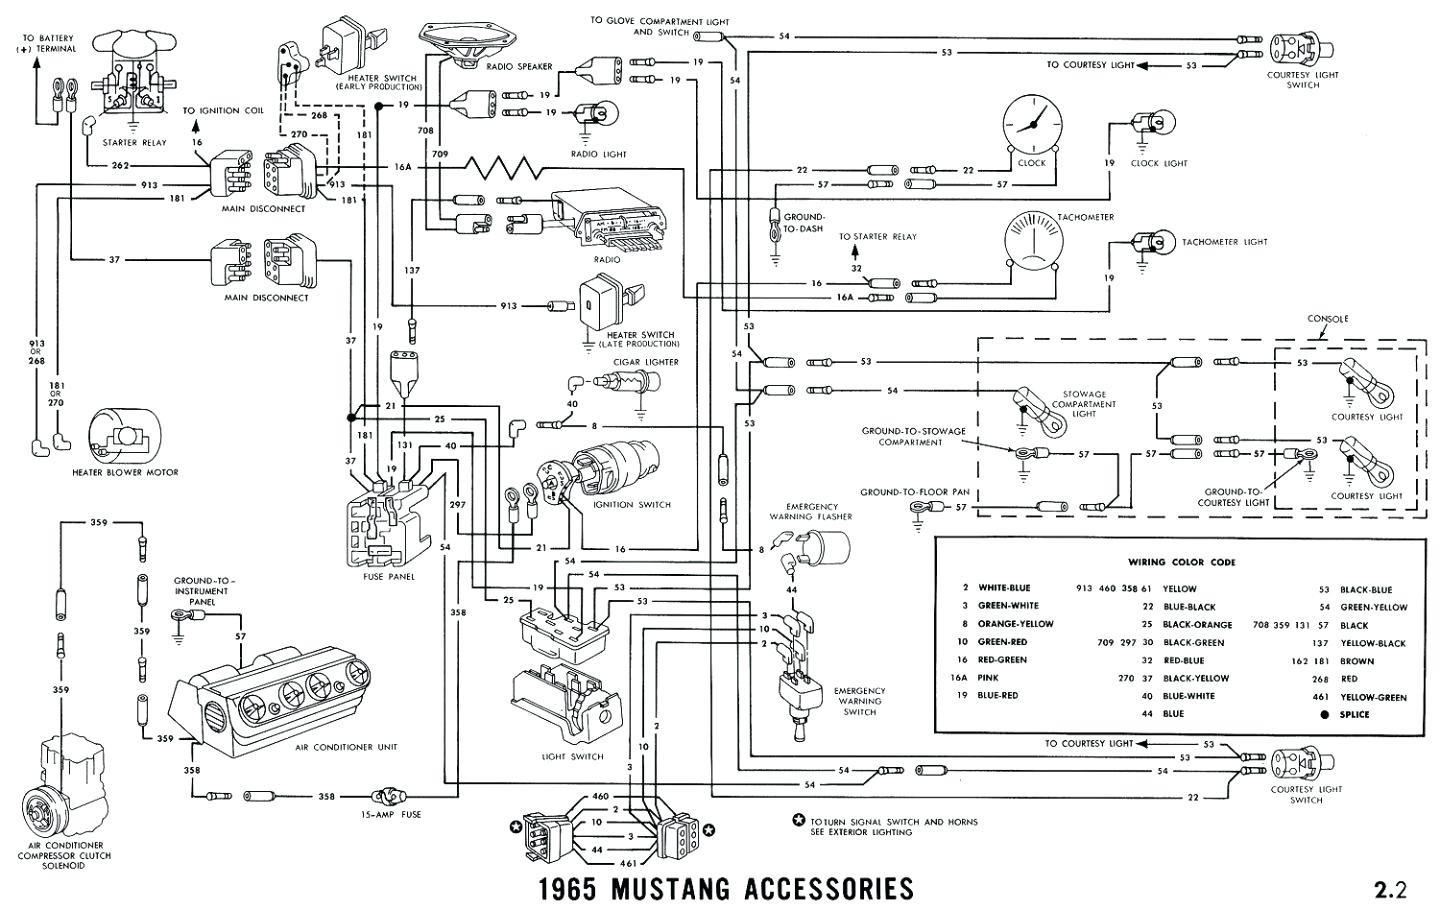 Epub Download Vintage Air Gen Iv Wiring Diagram on vintage air installs, how does central air work diagram, home a c system diagram, vintage air compressor, vintage air gen ii mini, vintage air controls, vintage air gen ii wiring, vintage air gen iv, auto air conditioning parts diagram, vintage auto wiring harness, ranger boat trailer parts diagram, auto a c system diagram, trailer electrical connectors diagram, vintage air plumbing diagram, vintage air complete kits, vintage air hose, vintage air ac installation, vintage air installation diagram, ac system diagram, vintage air ac line diagram,